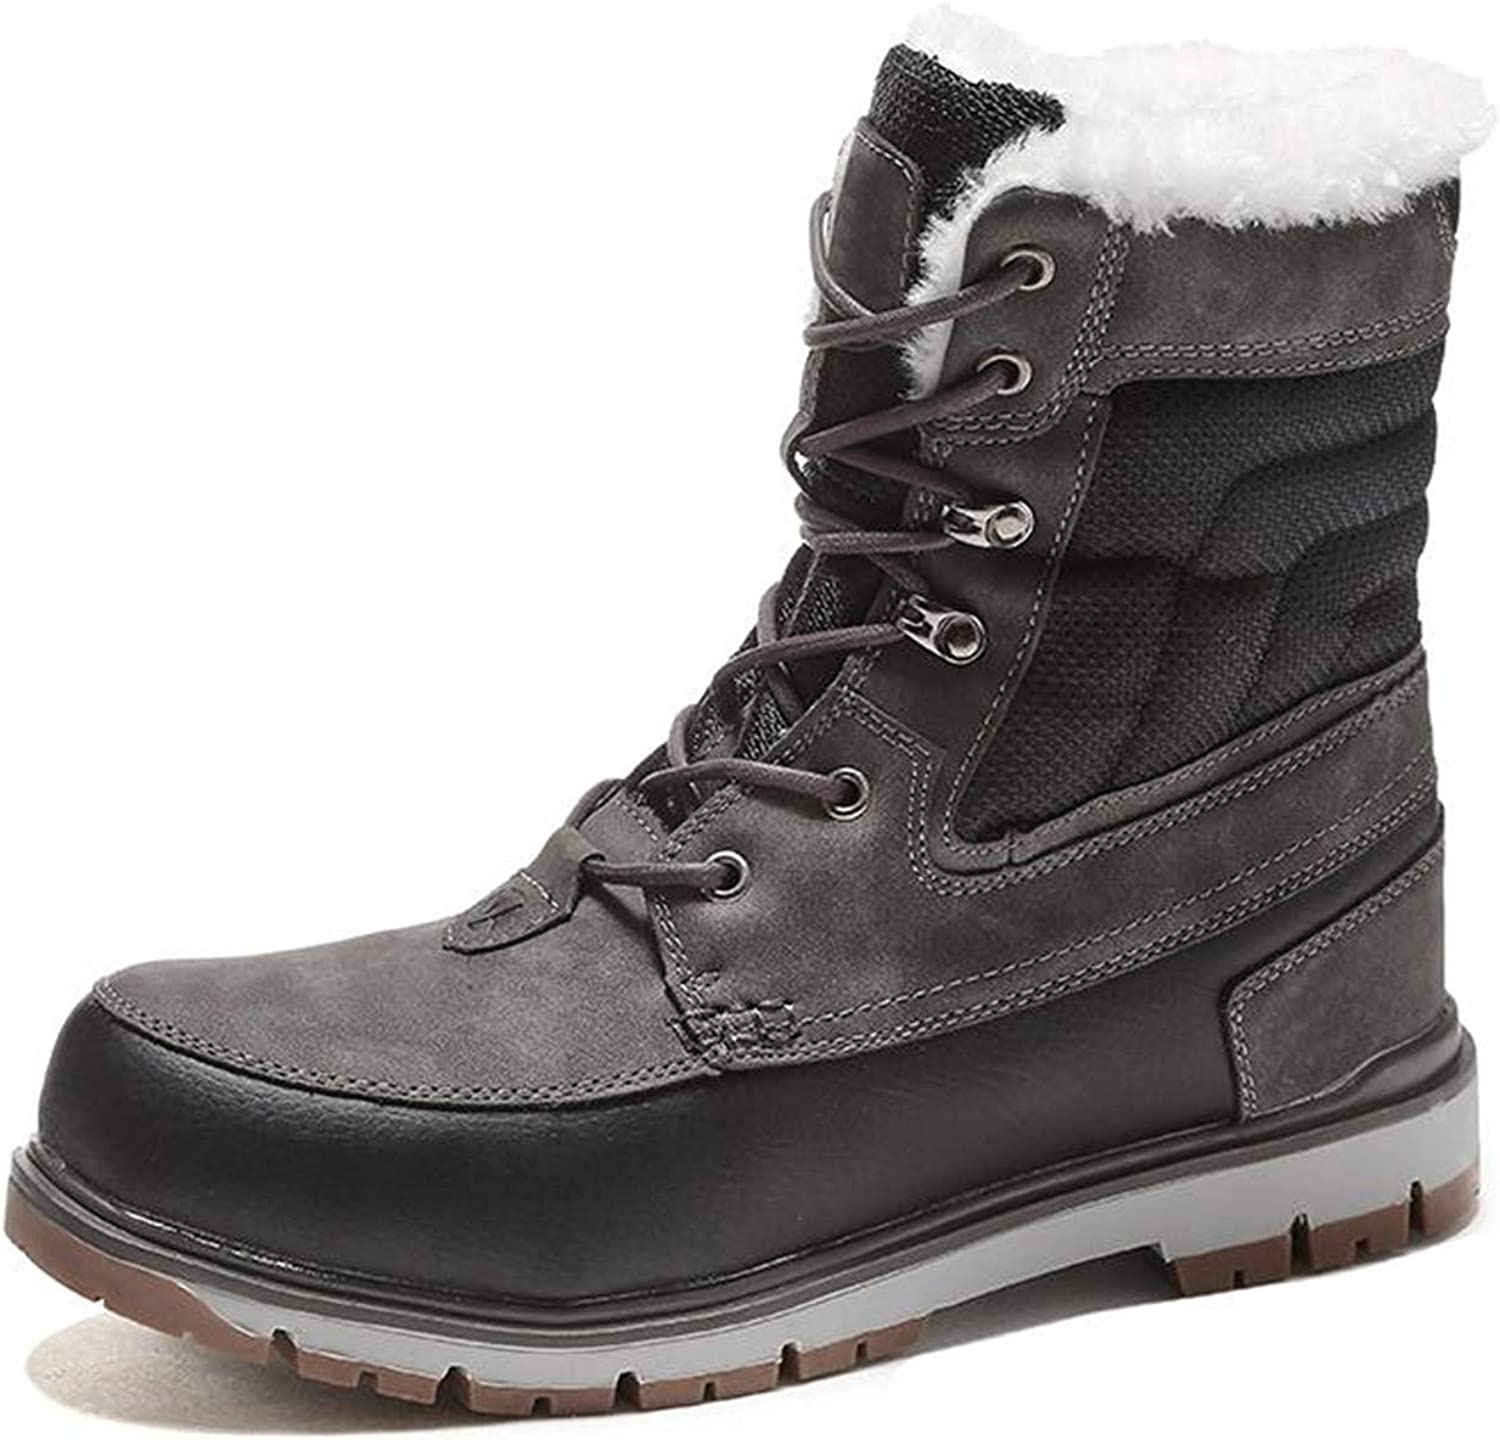 Winter Boots Warm Plush Fur Snow Platform Boots Men Ankle Boot Casual Motorcycle Boot